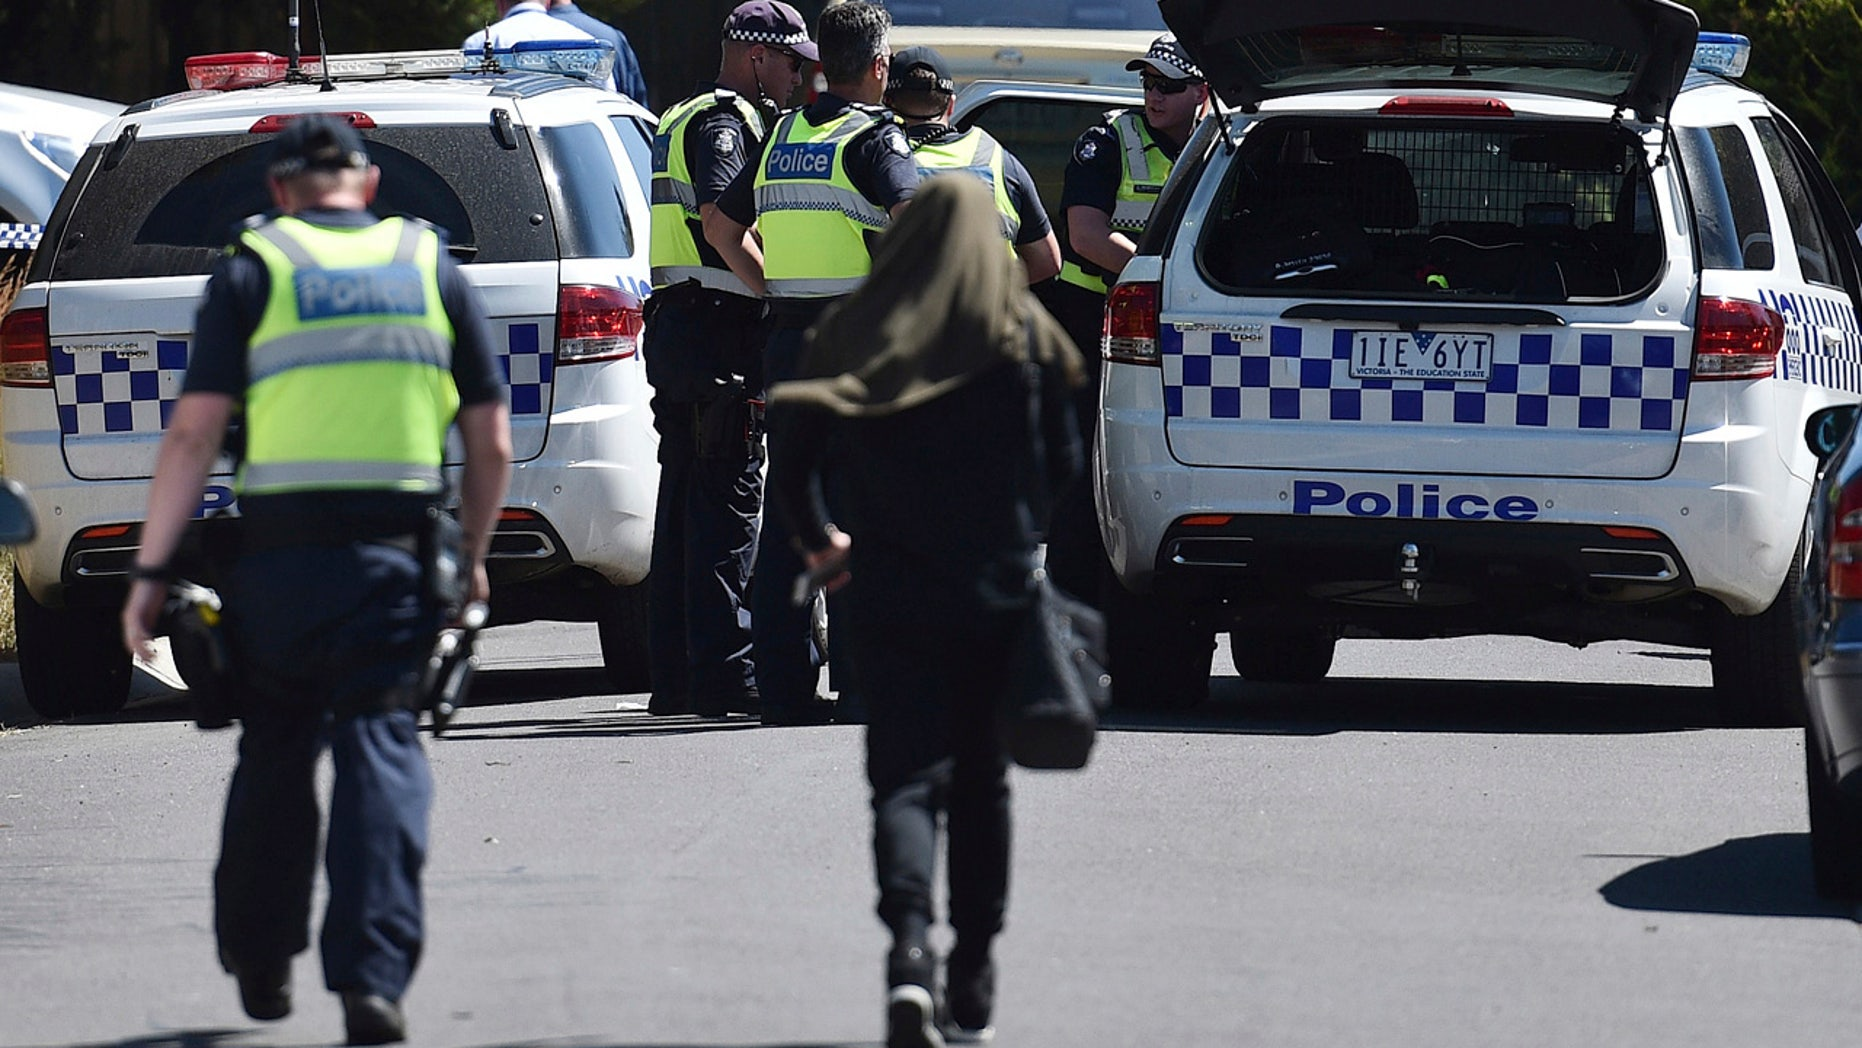 Police accompany a woman as they attend the scene where a house was raided at Meadow Heights in Melbourne, Australia, Friday, Dec. 23, 2016.